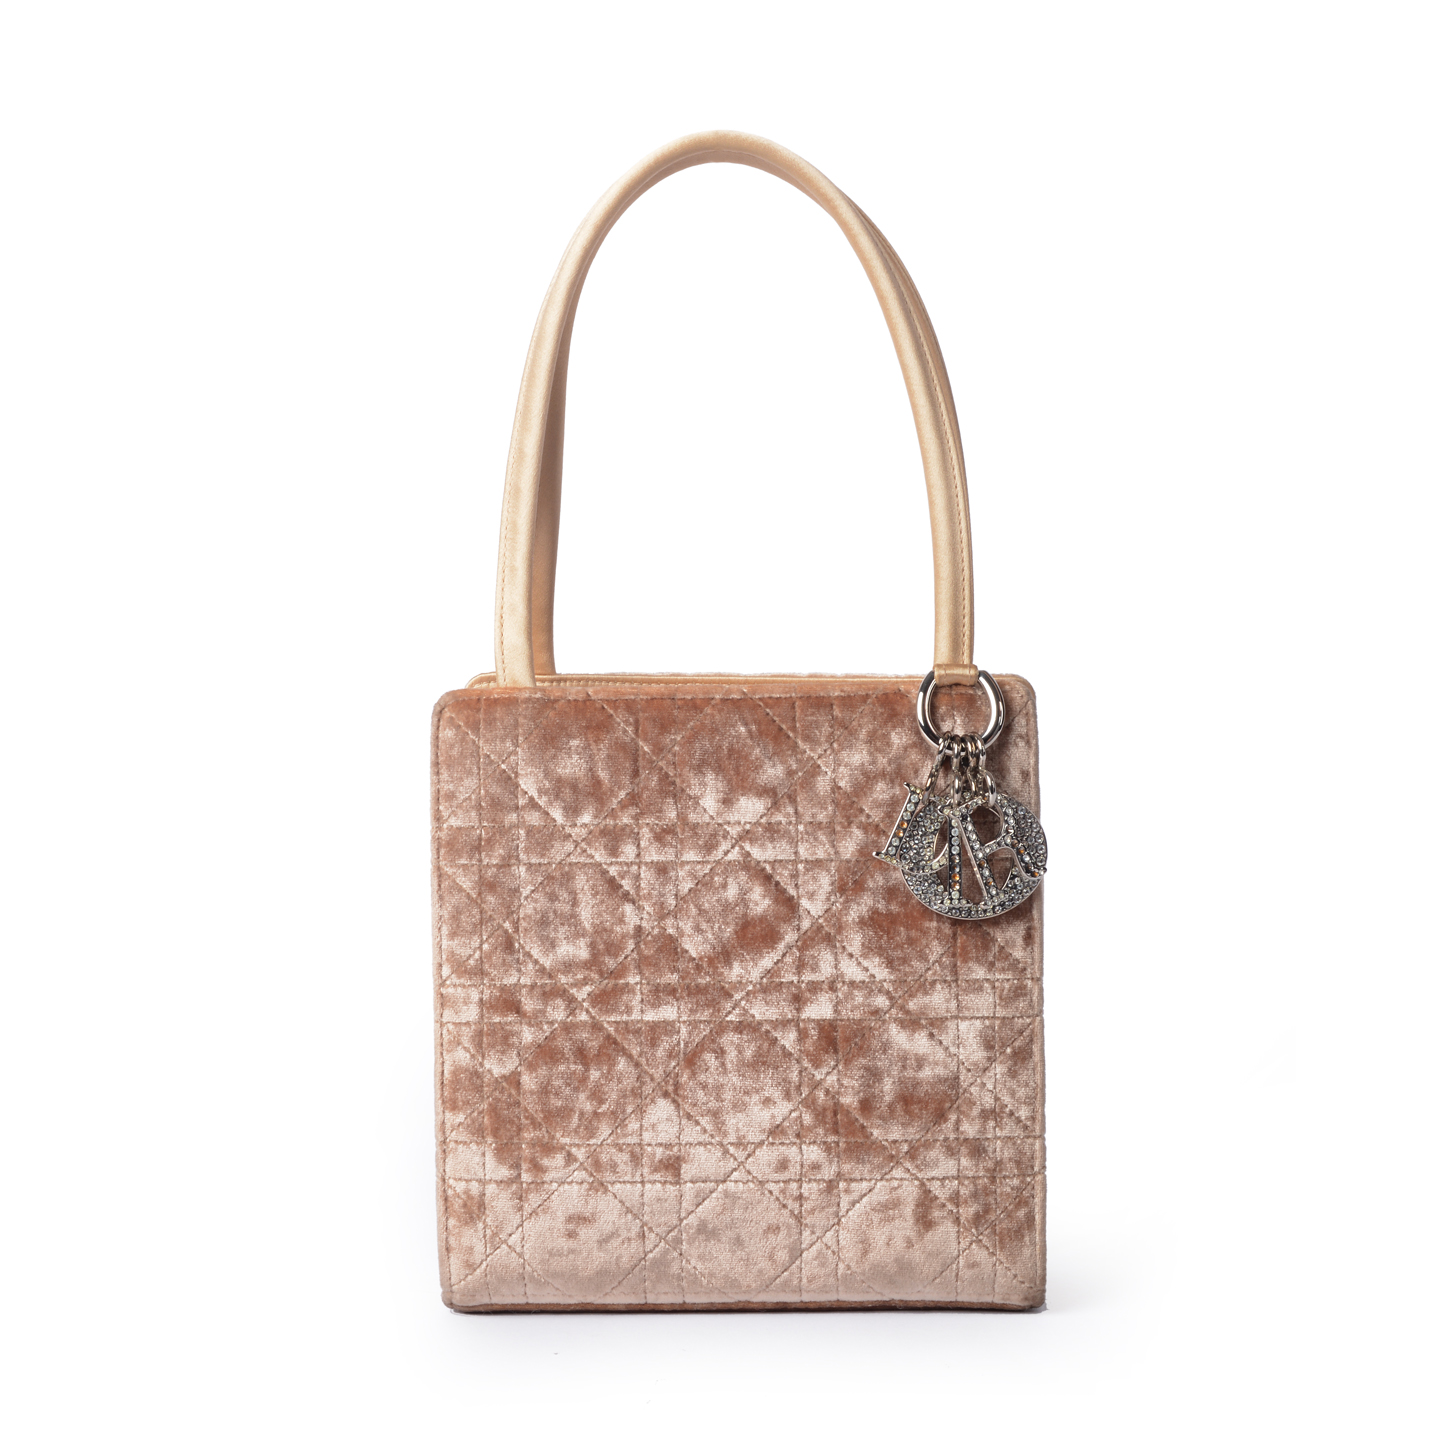 Buy Branded and Luxury Handbags for Women Online In India 6af262be70969